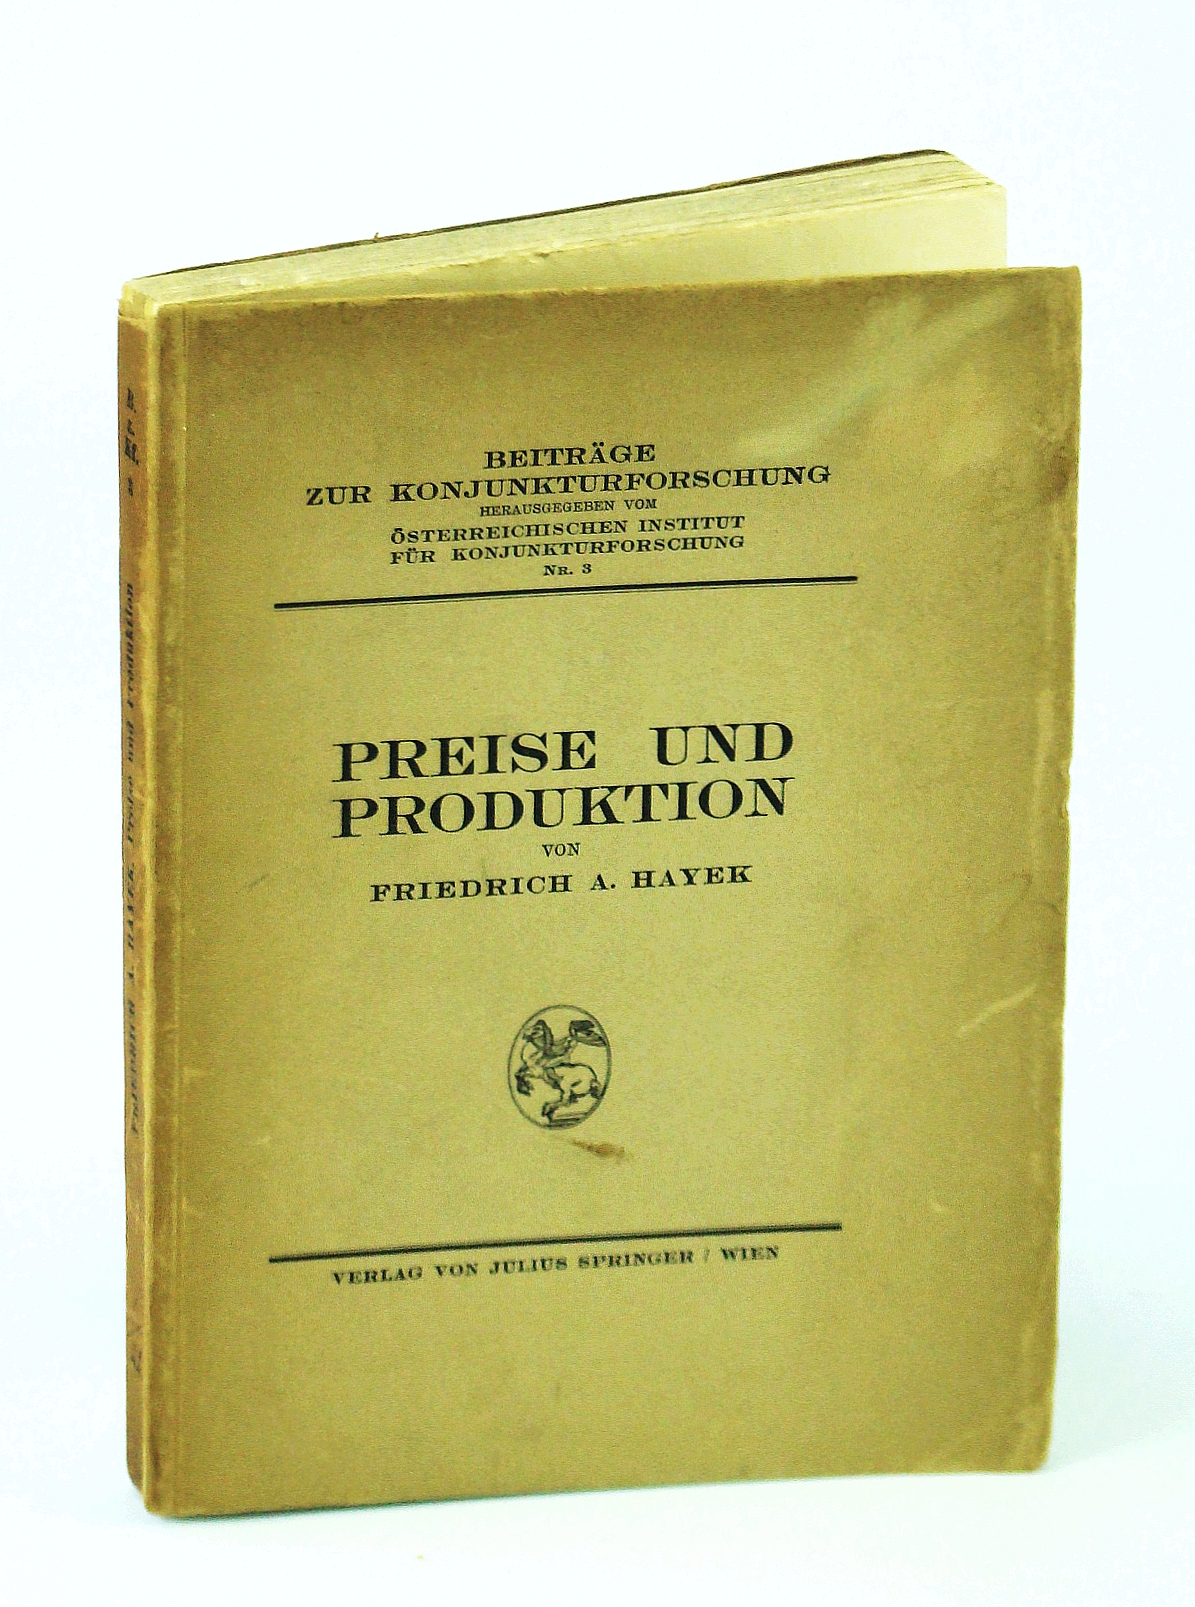 Image for Preise Und Produktion ( Common English Title: Prices and Production)